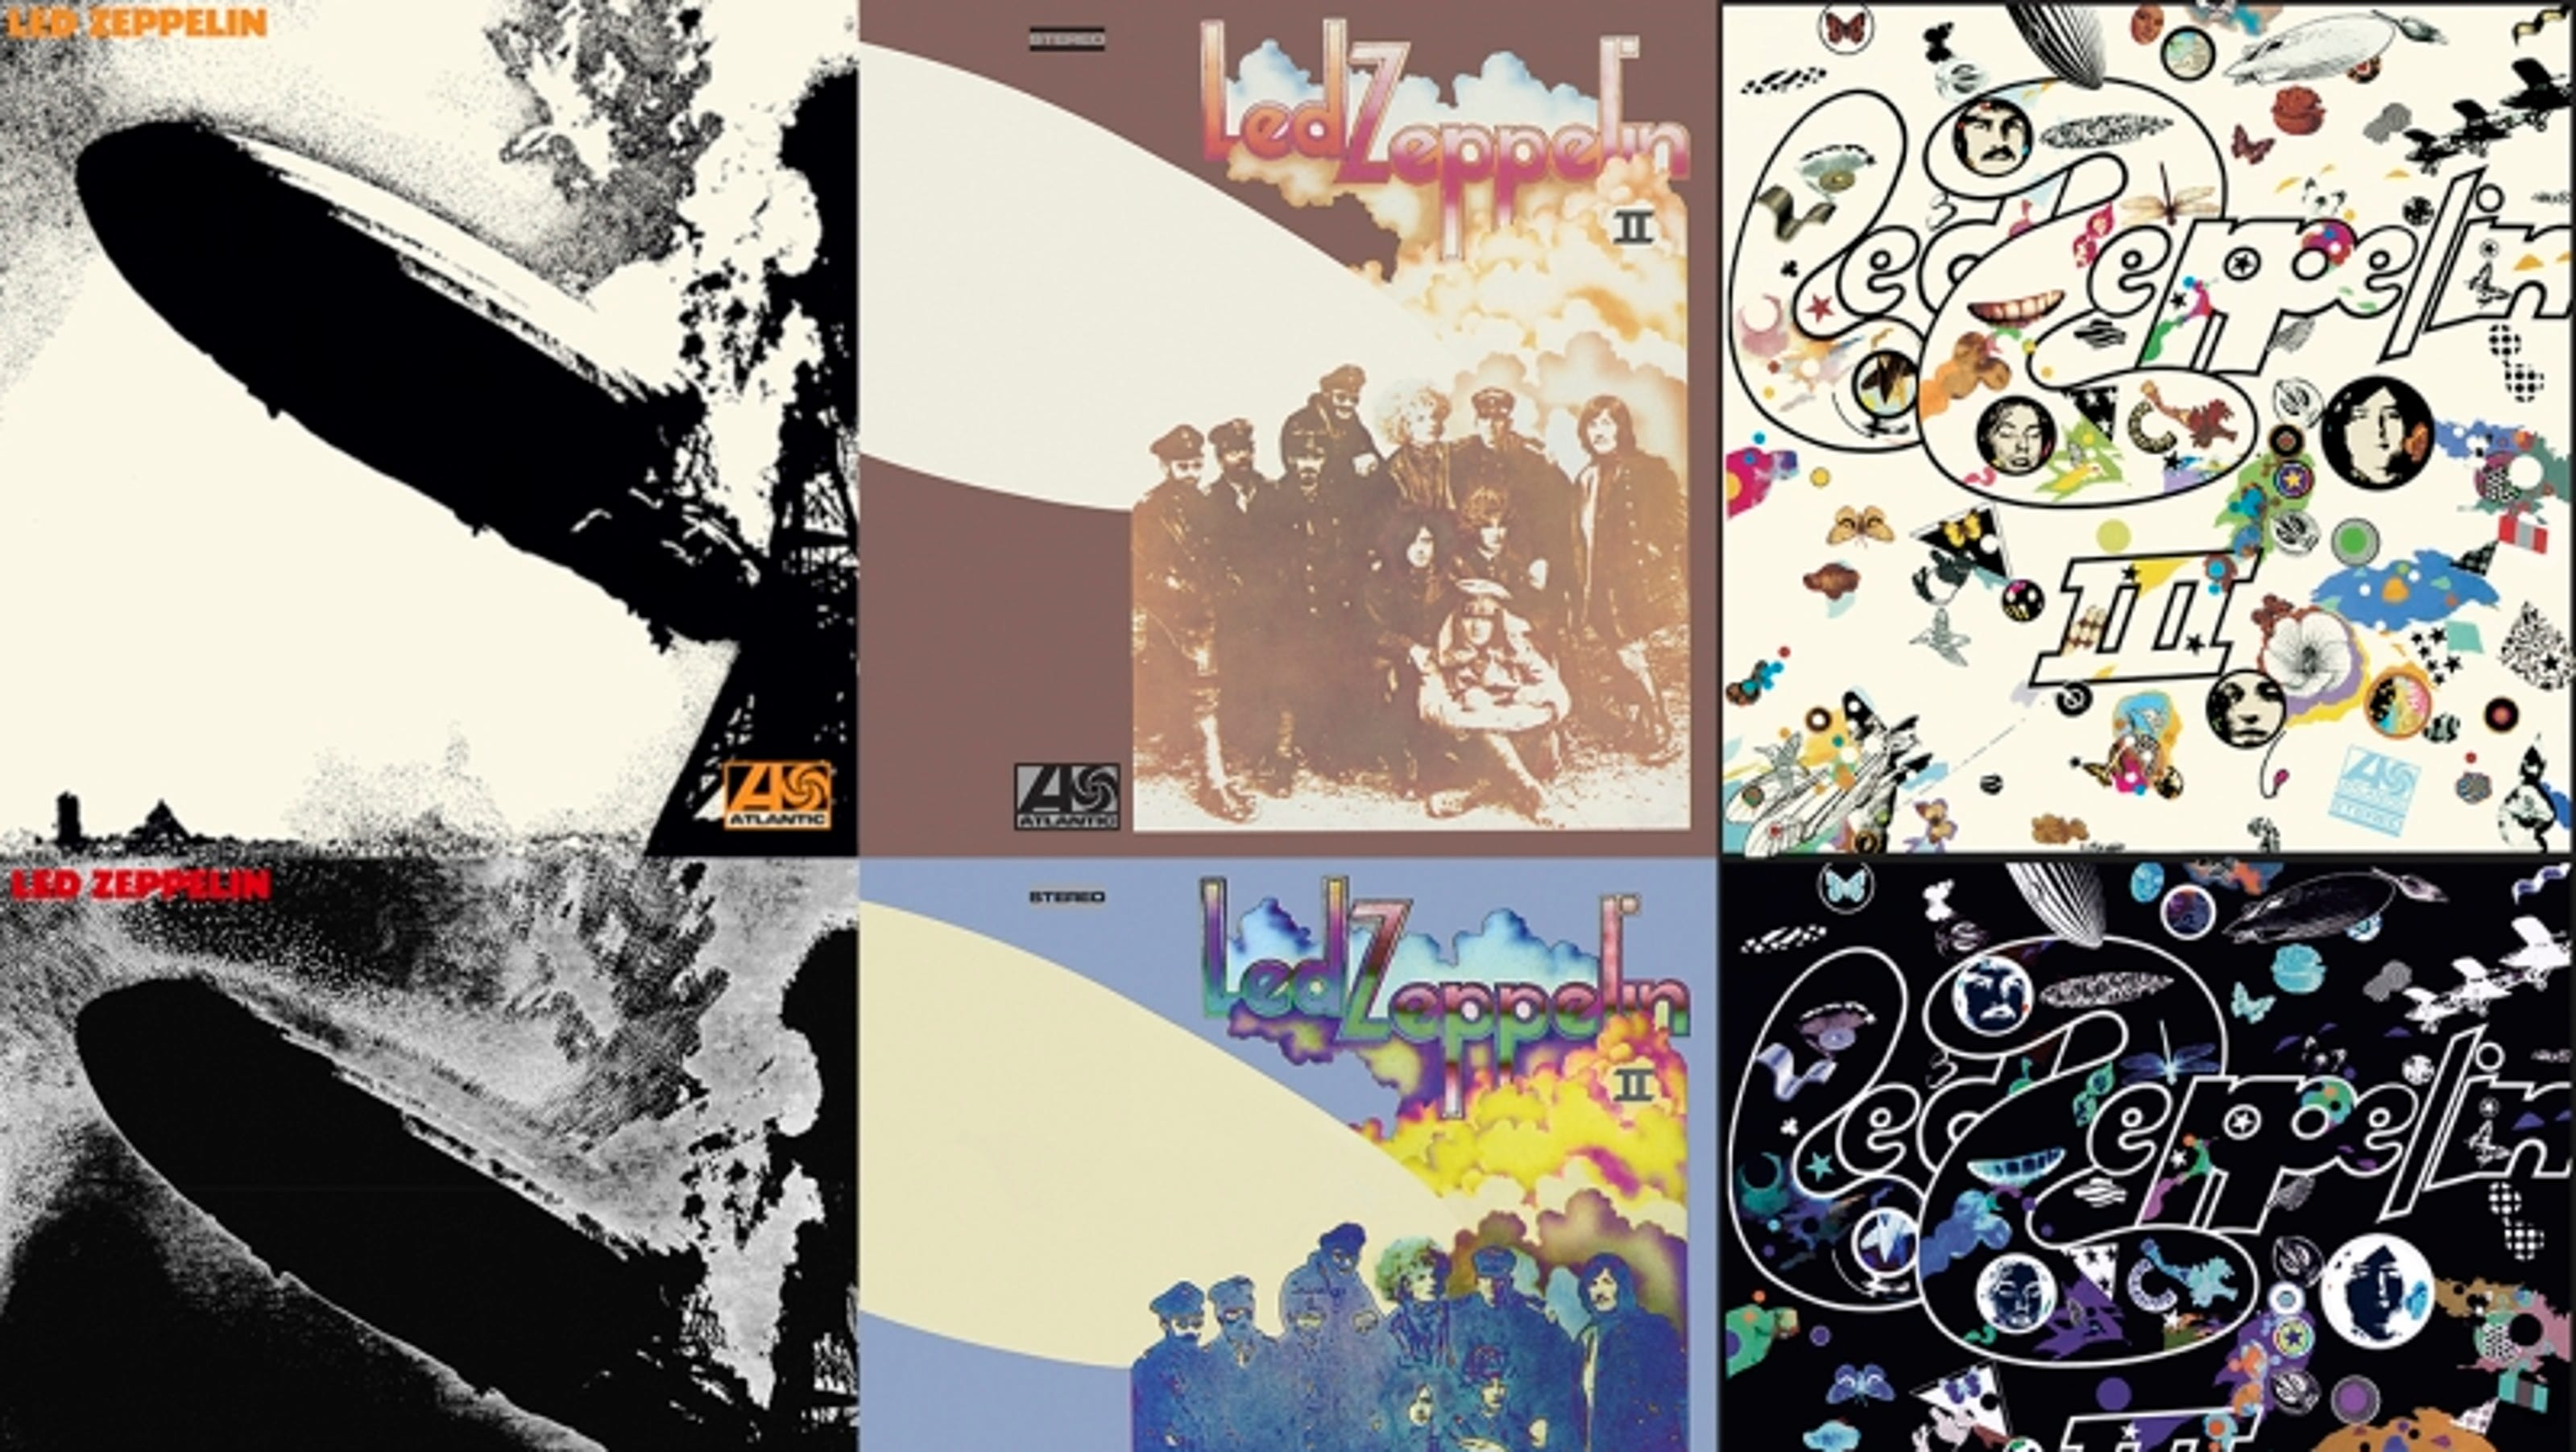 led zeppelin reissues launch june 3 with i ii iii. Black Bedroom Furniture Sets. Home Design Ideas